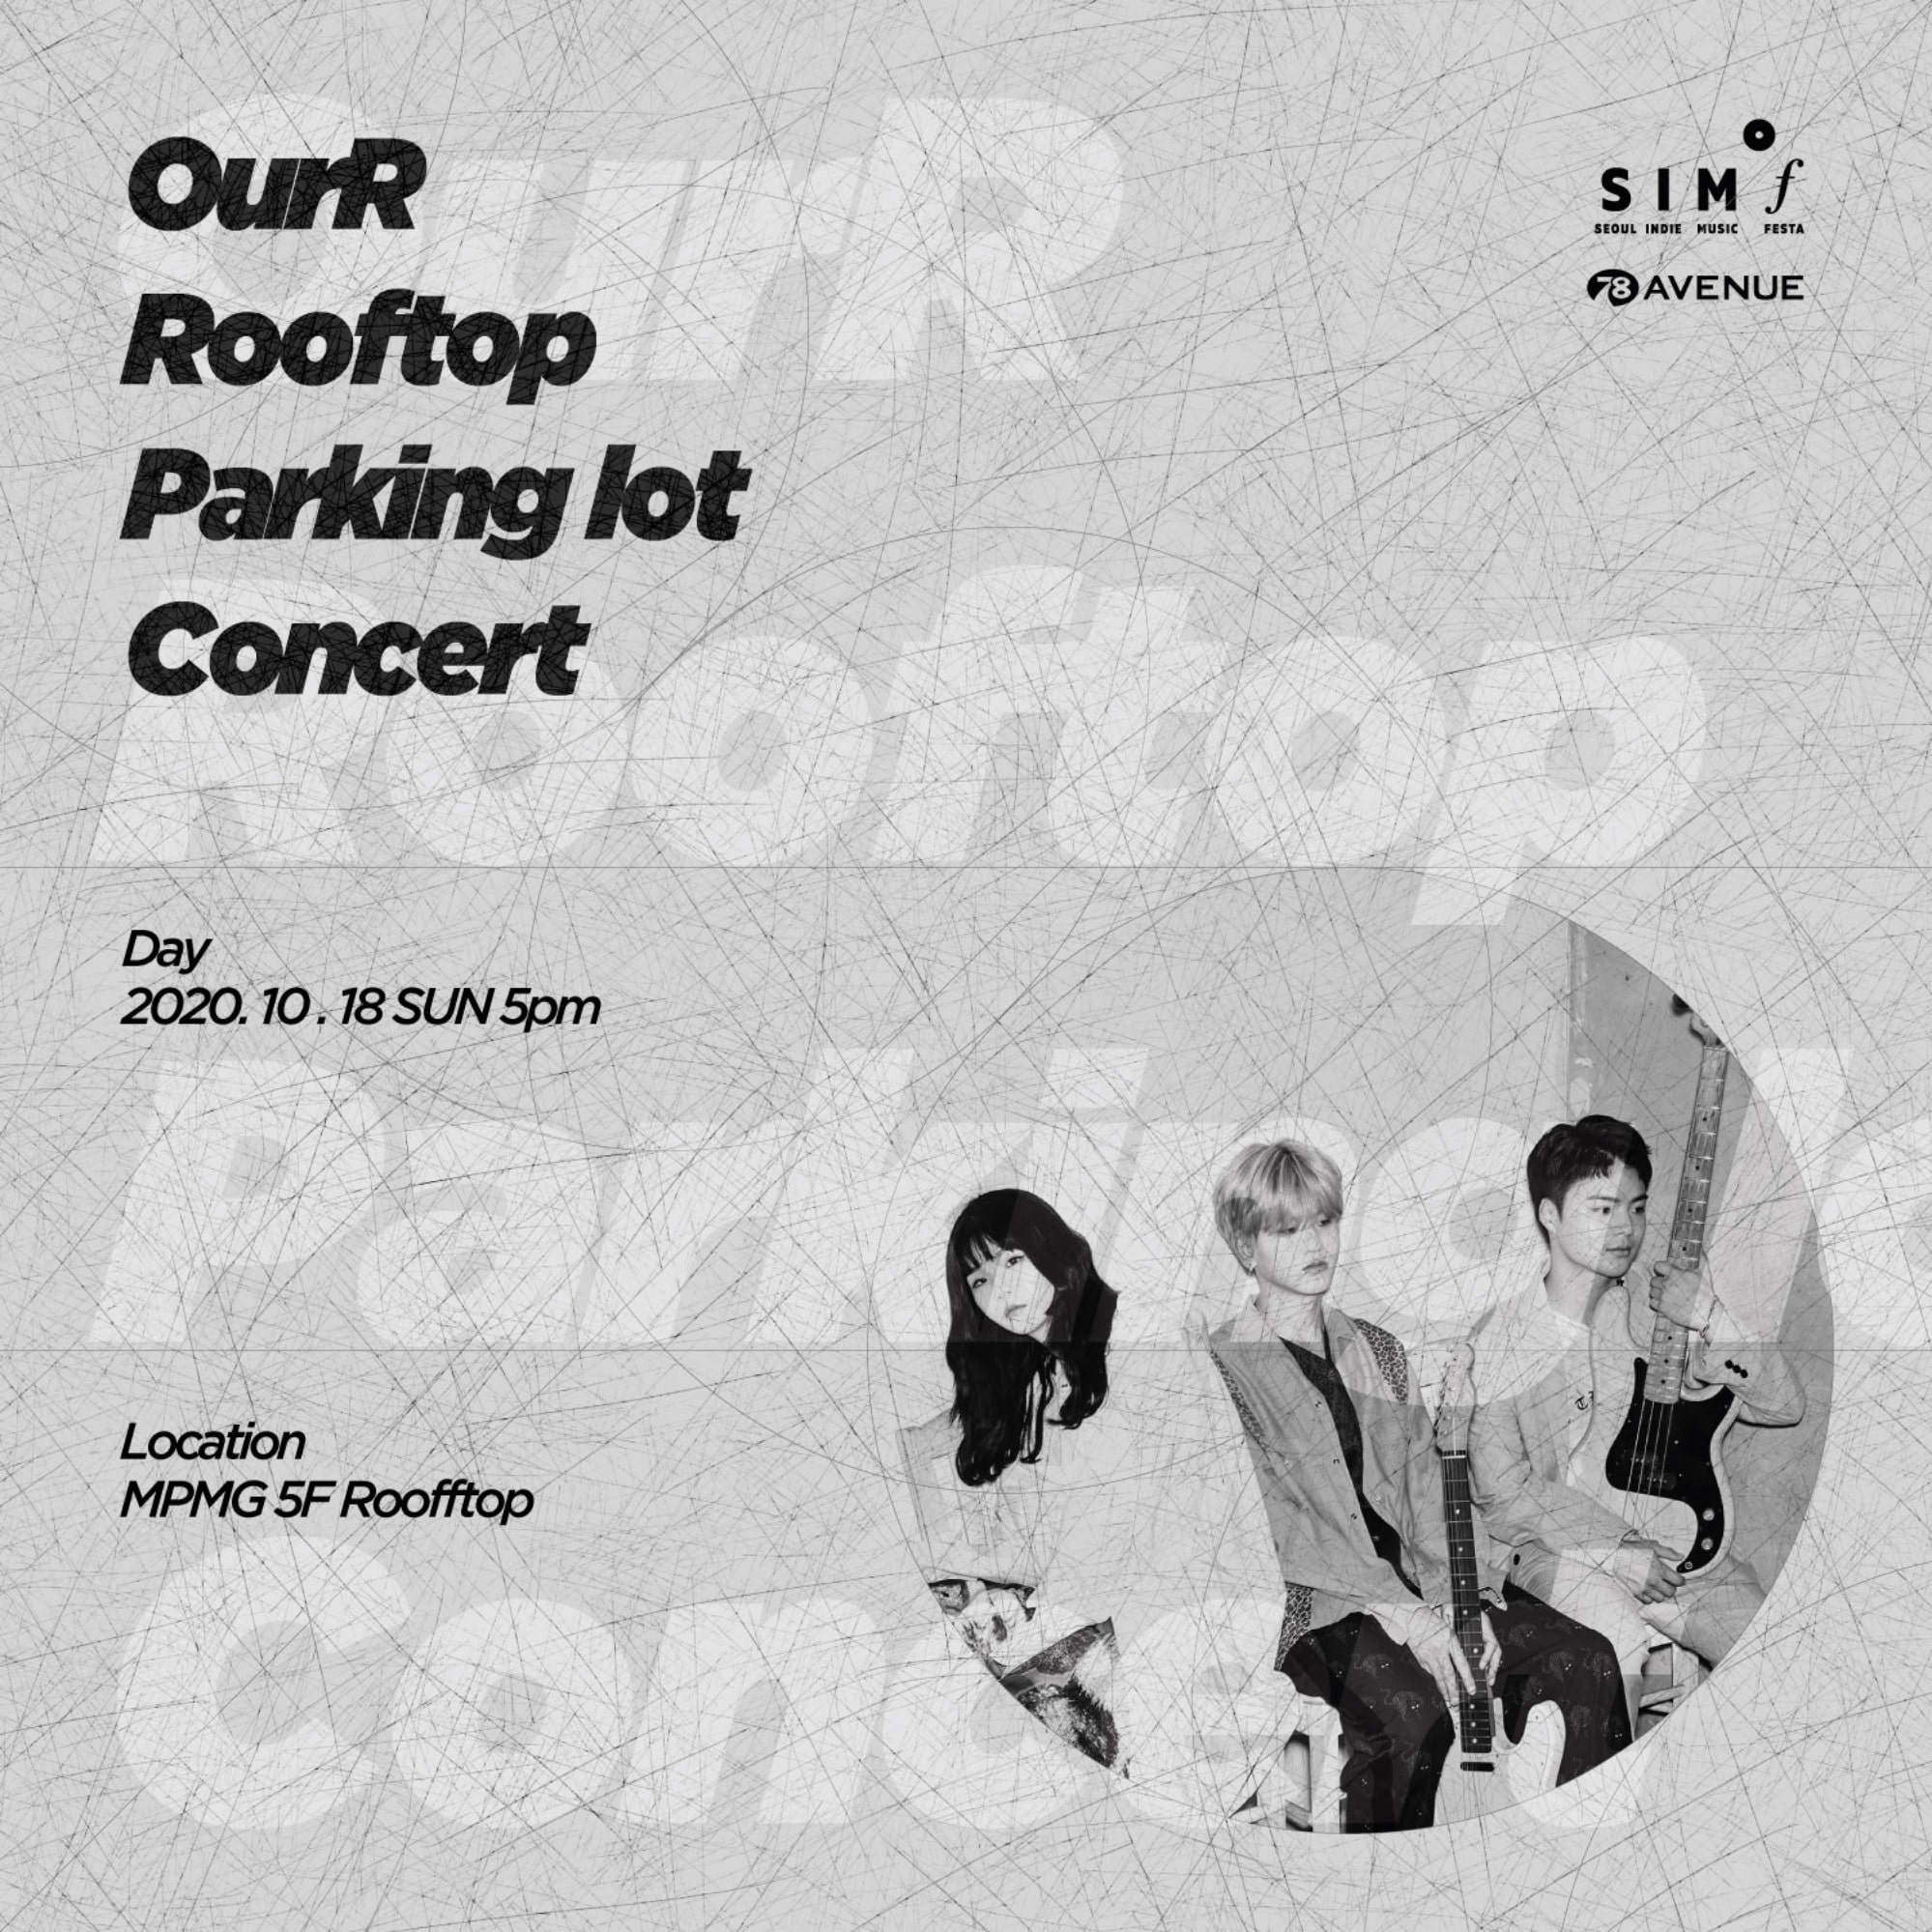 [2020.10.18]OurR Rooftop Parking lot Concert